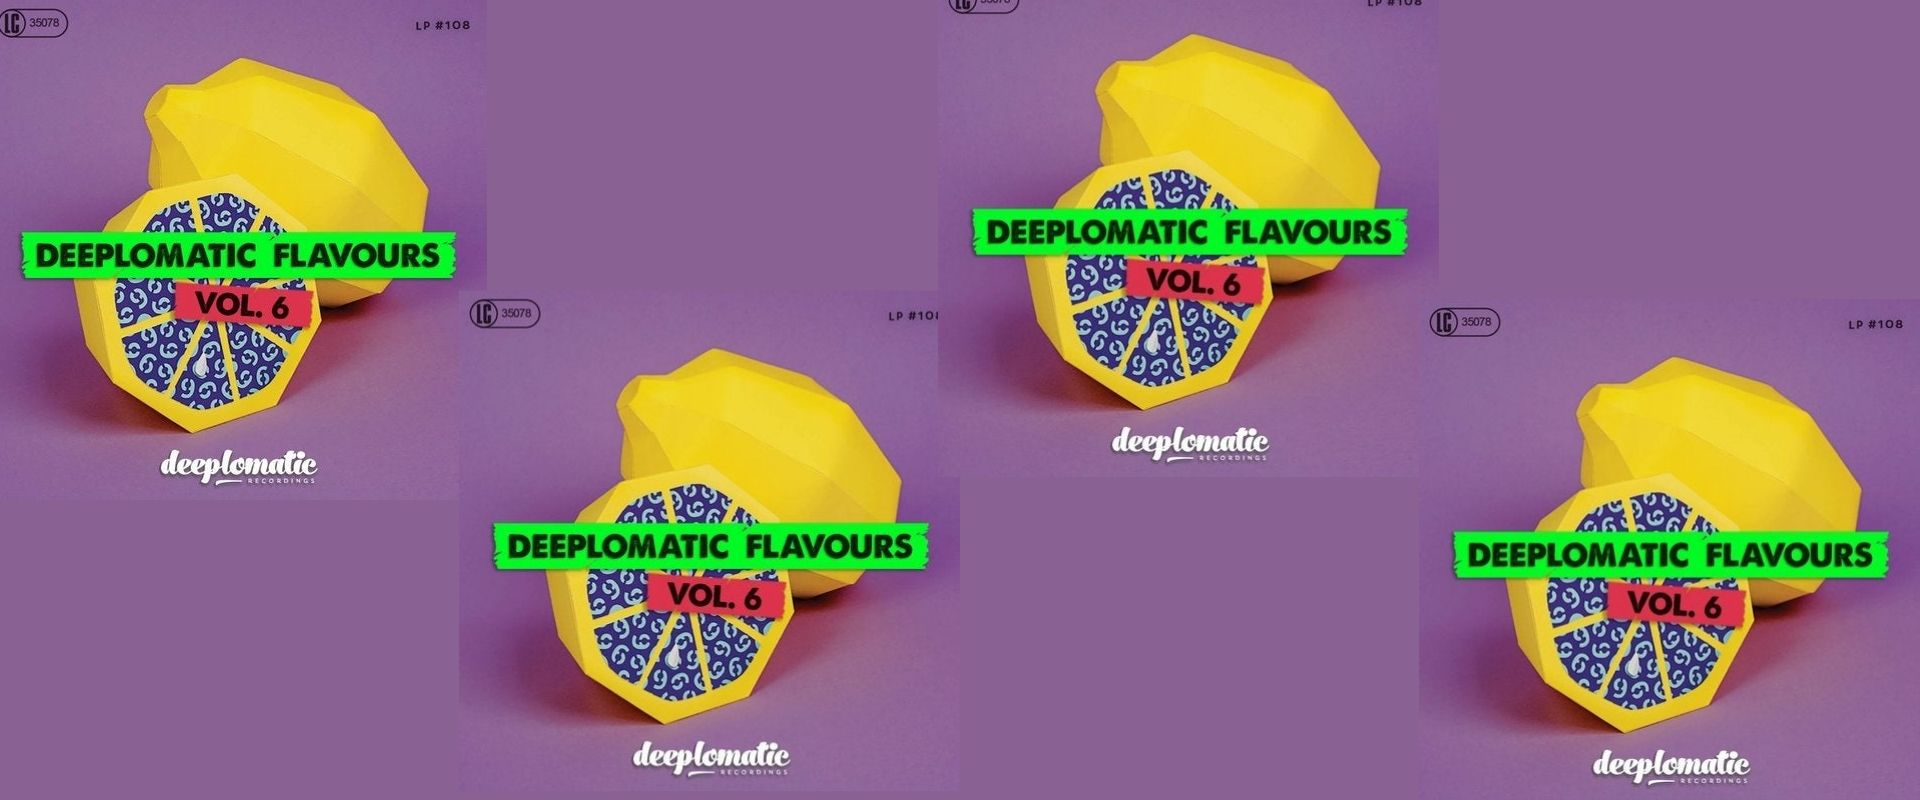 deeplomatic flavours